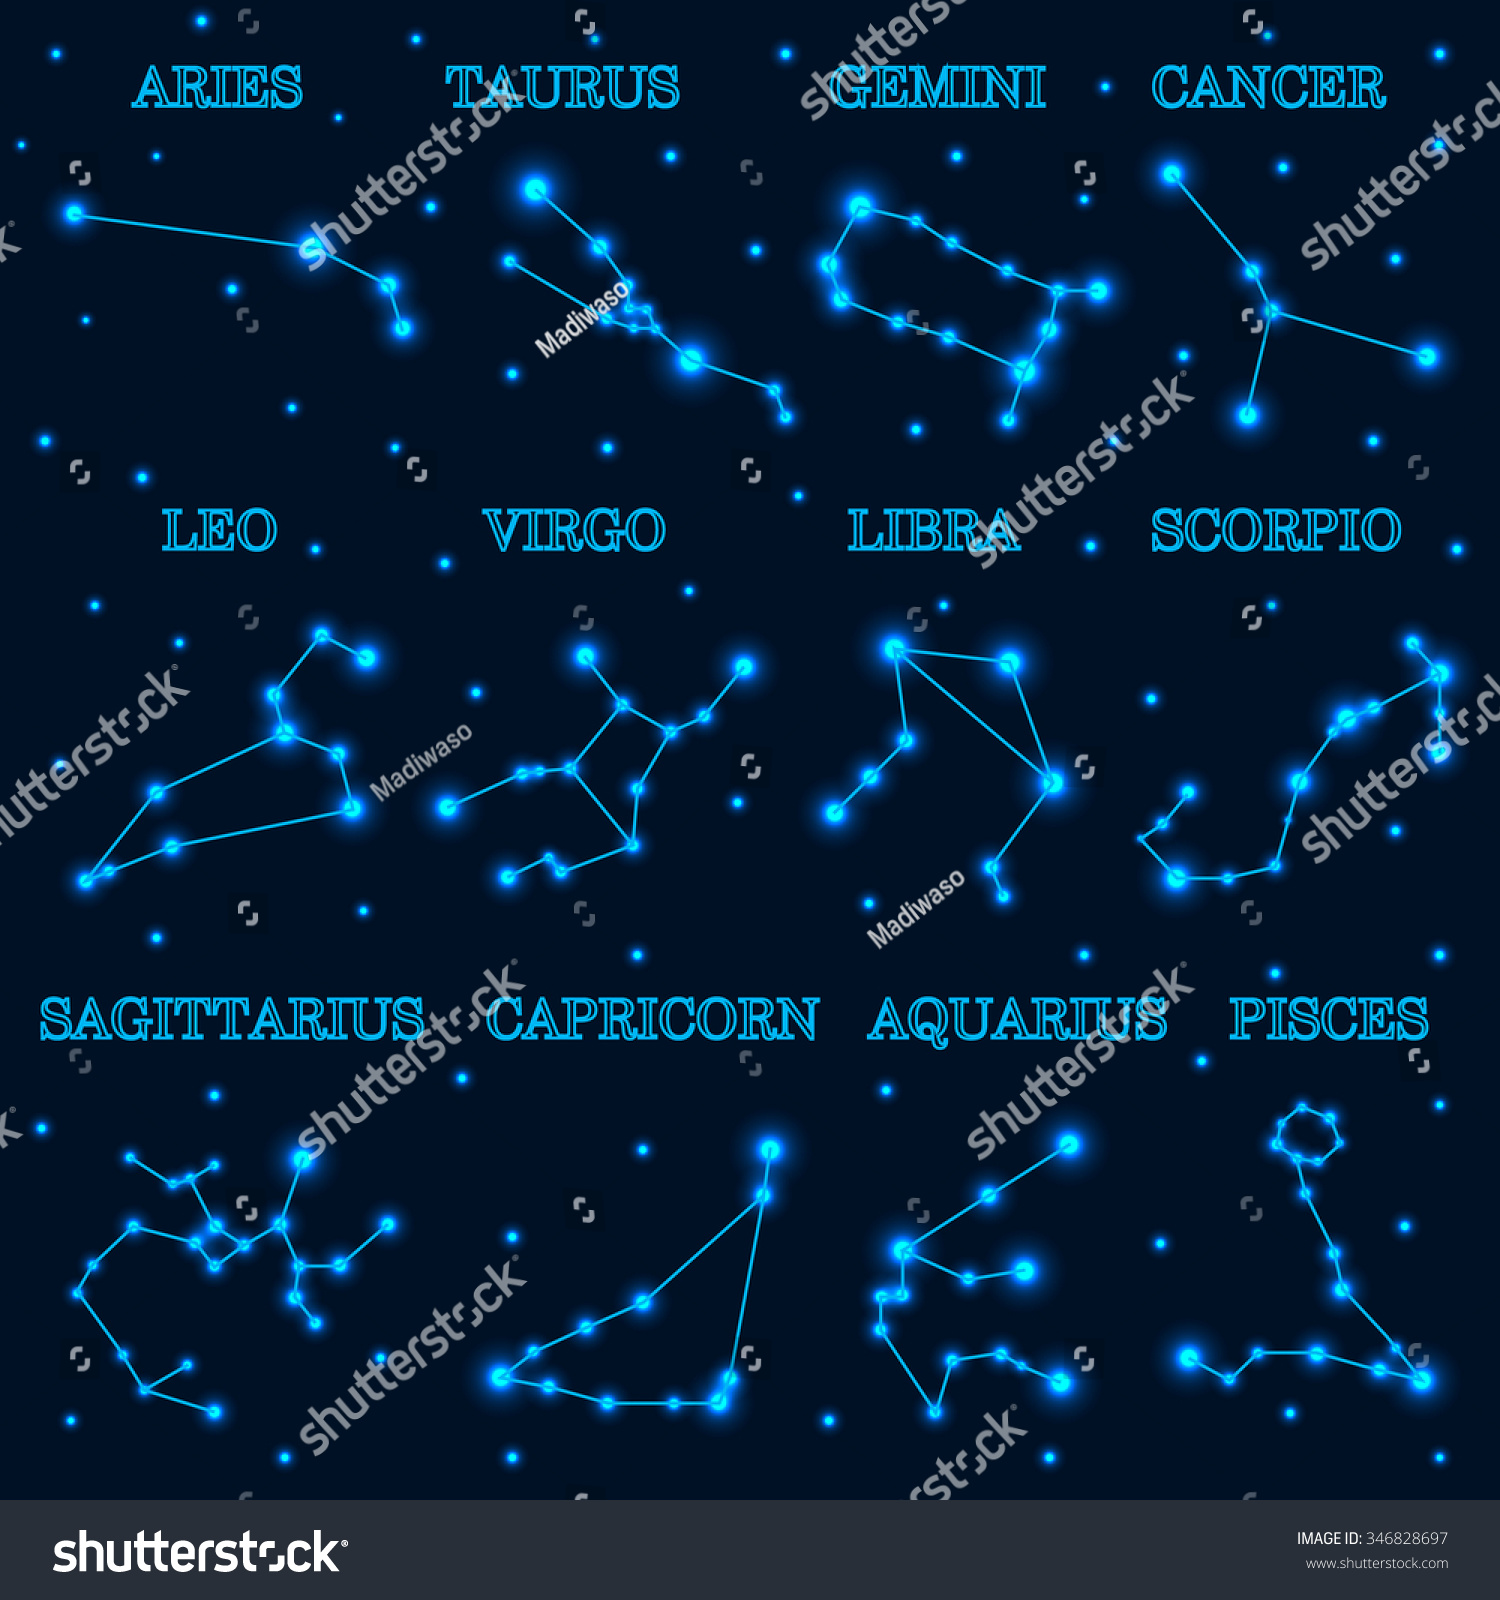 constellations project space art spacecraft - photo #23